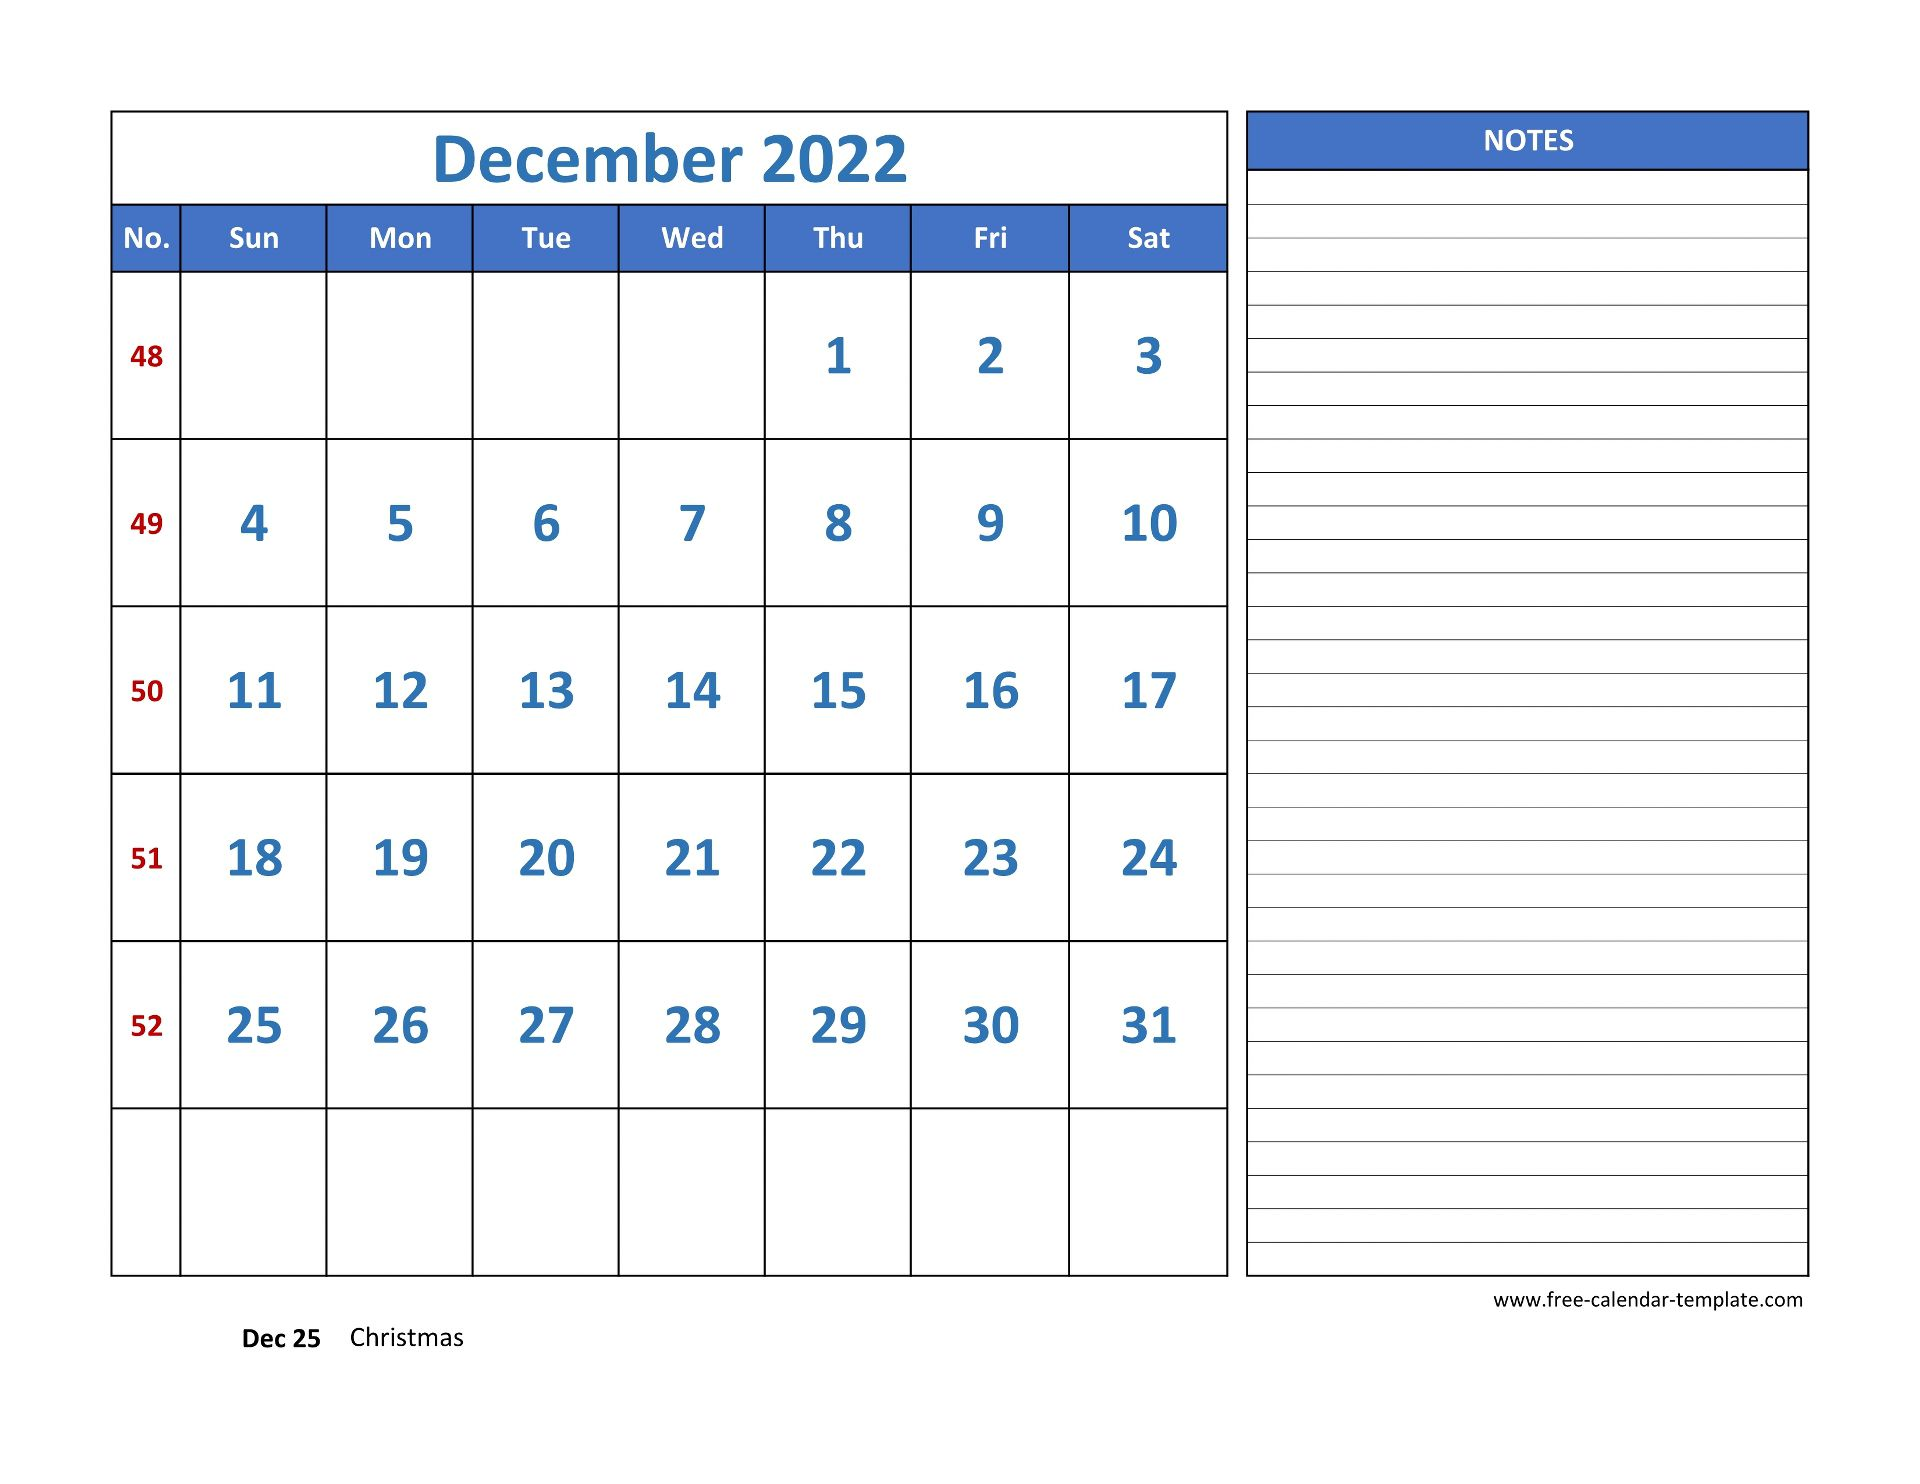 December Calendar 2022 grid lines for holidays and notes ...